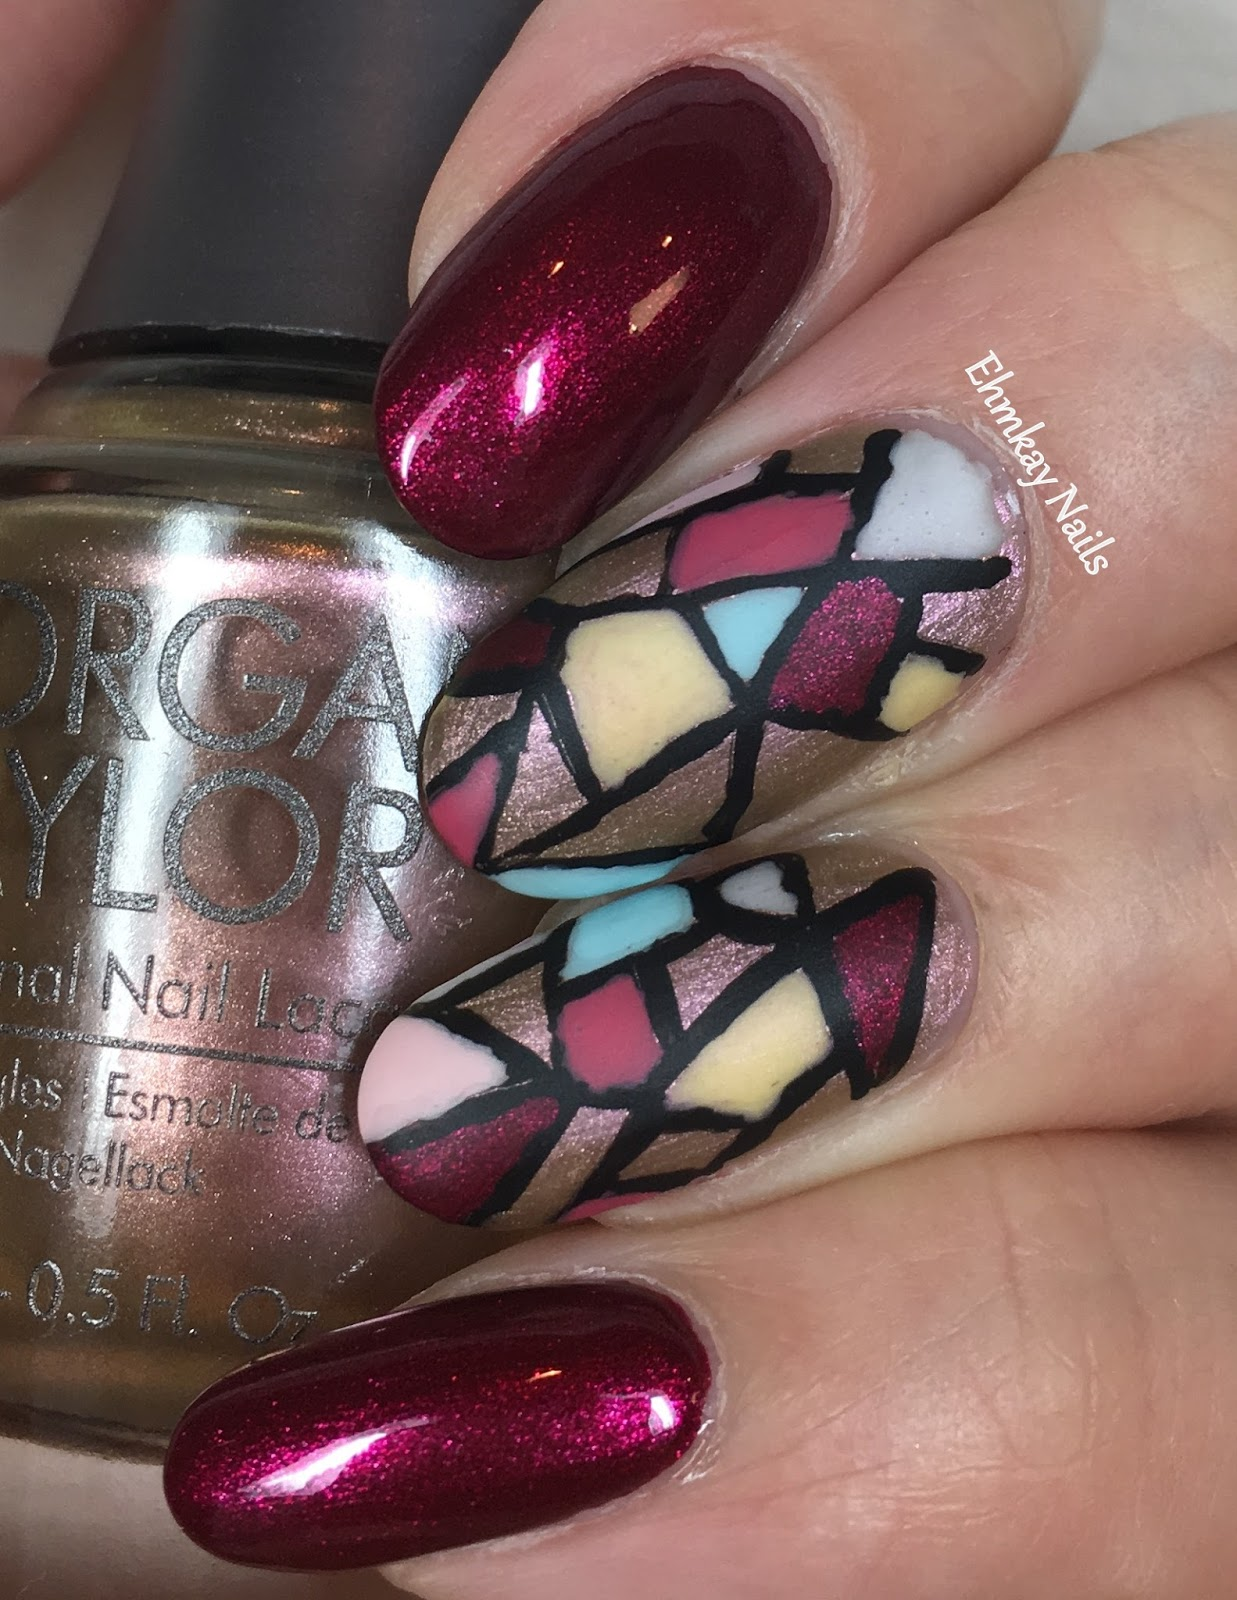 Ehmkay Nails Morgan Taylor Beauty And The Beast Stained Glass Nail Art